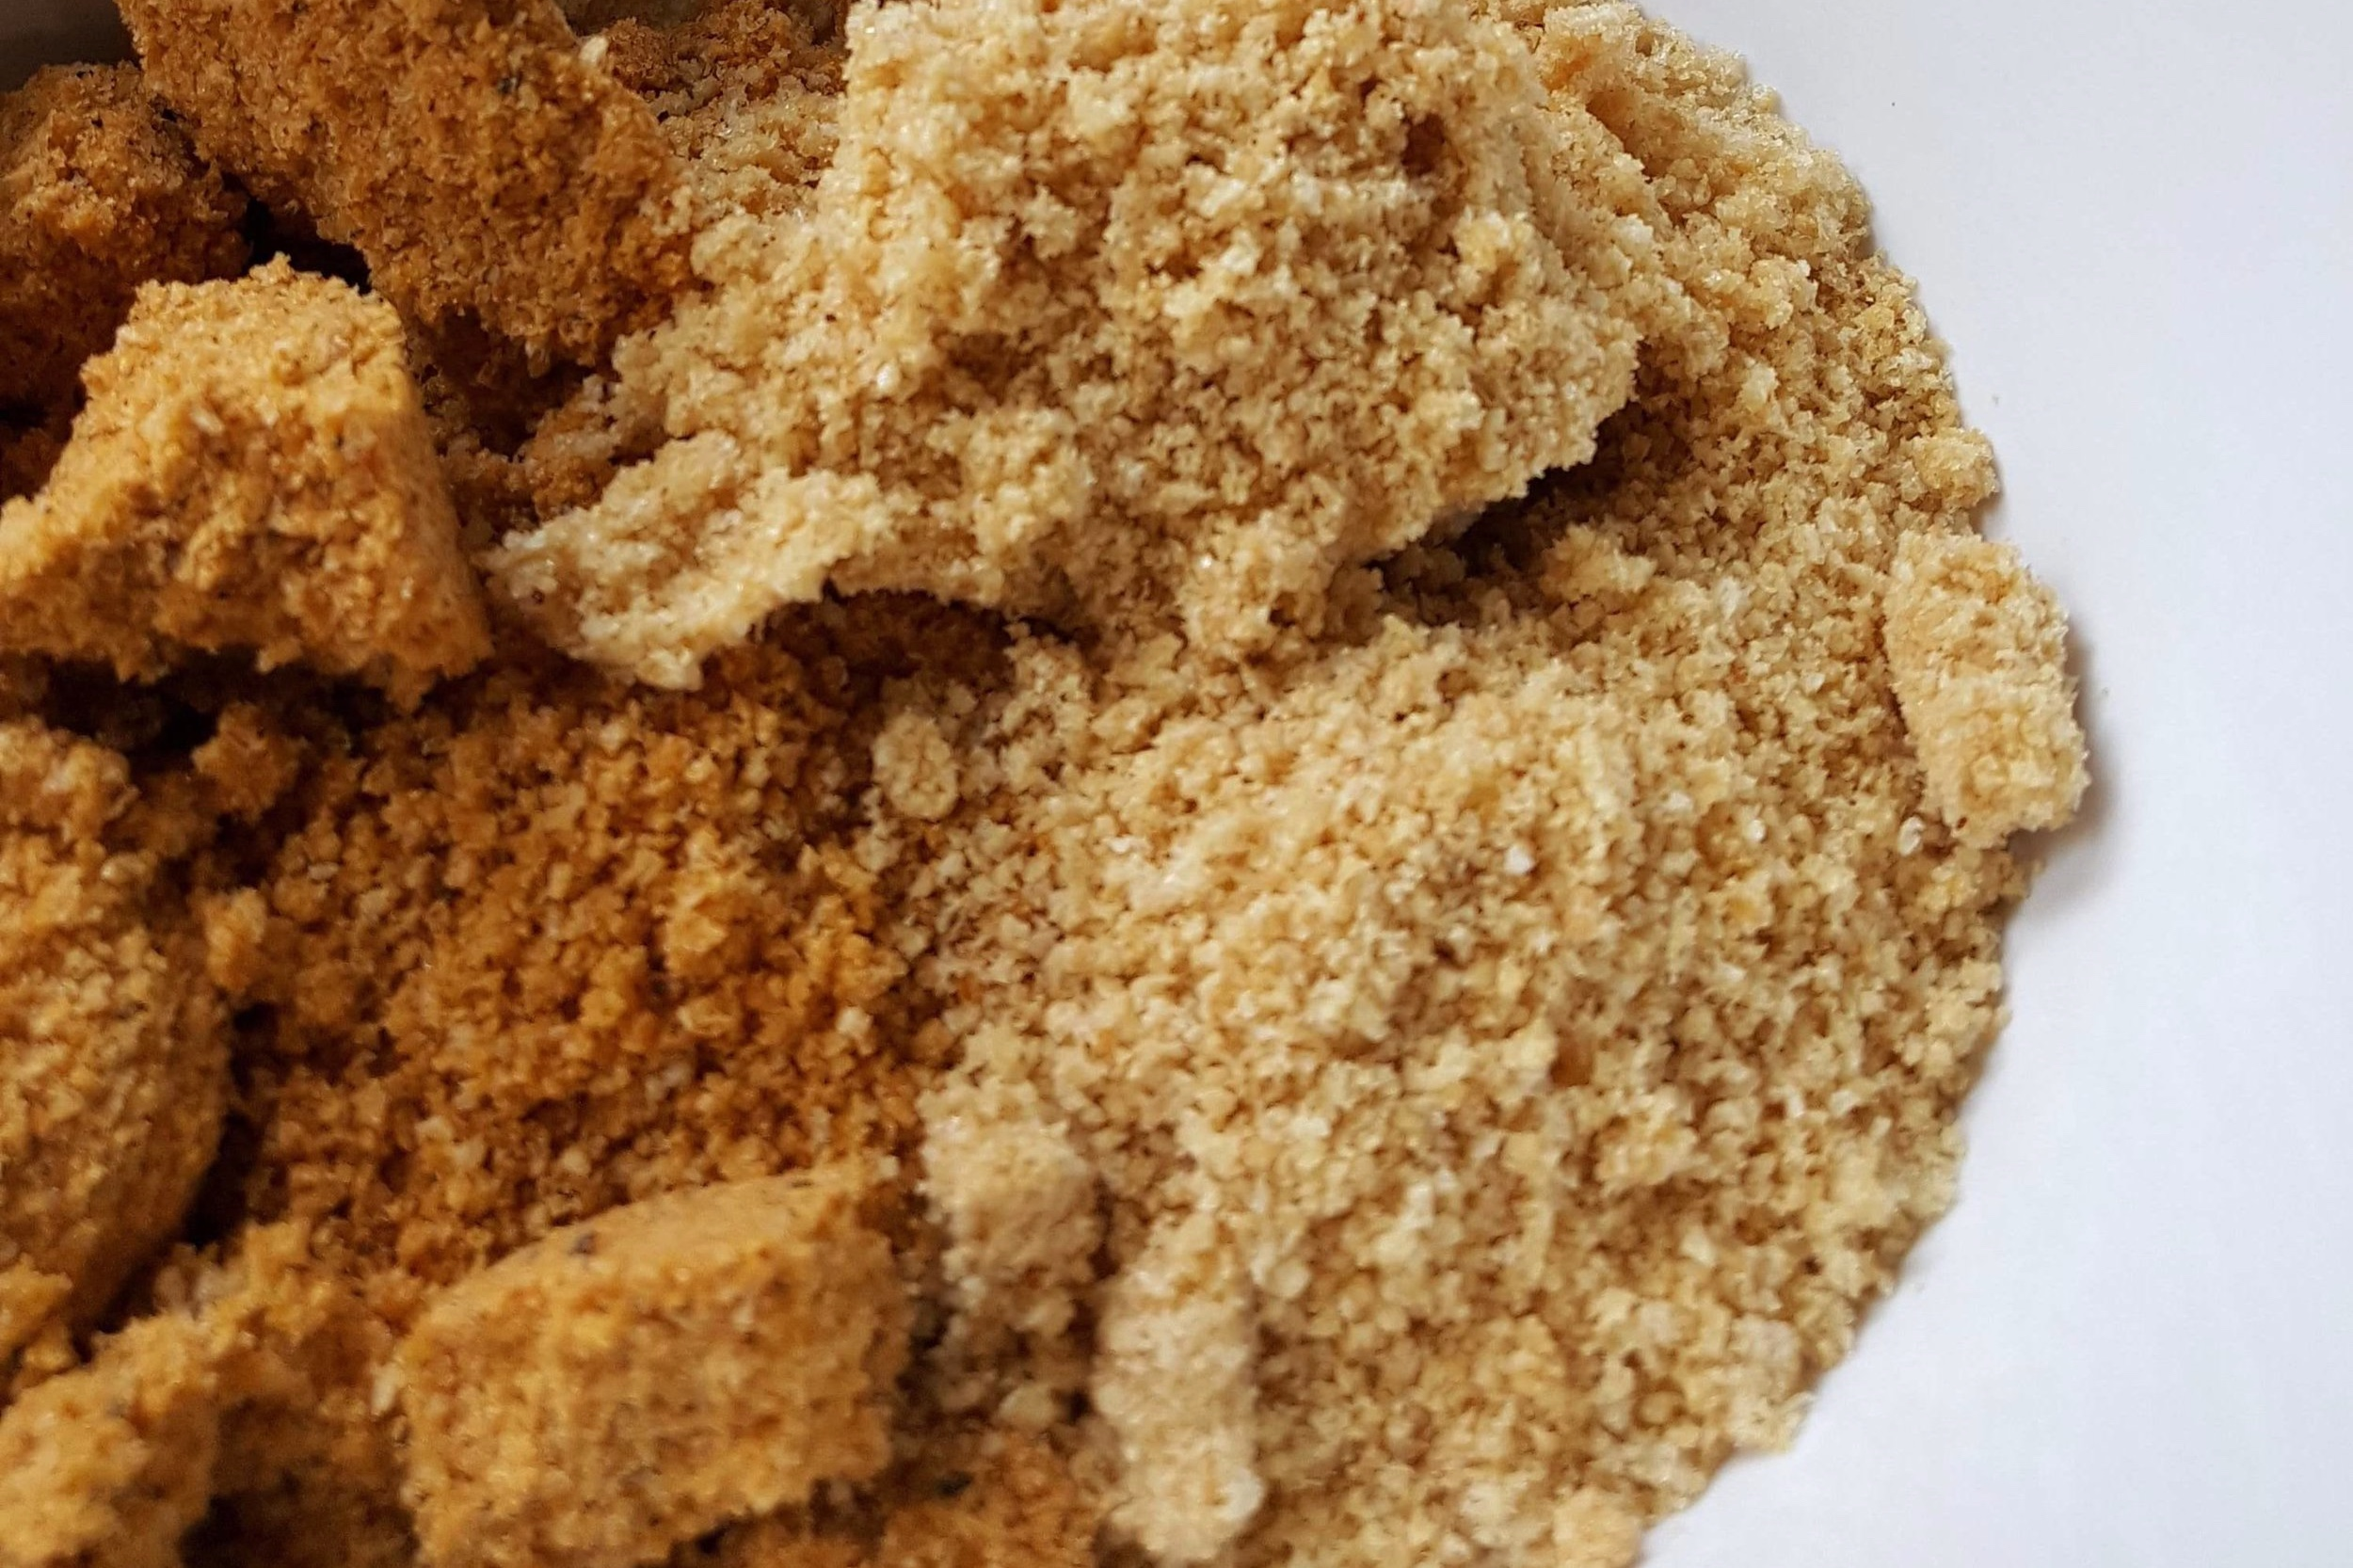 Half Spicy, half original pork rind bread crumbs.